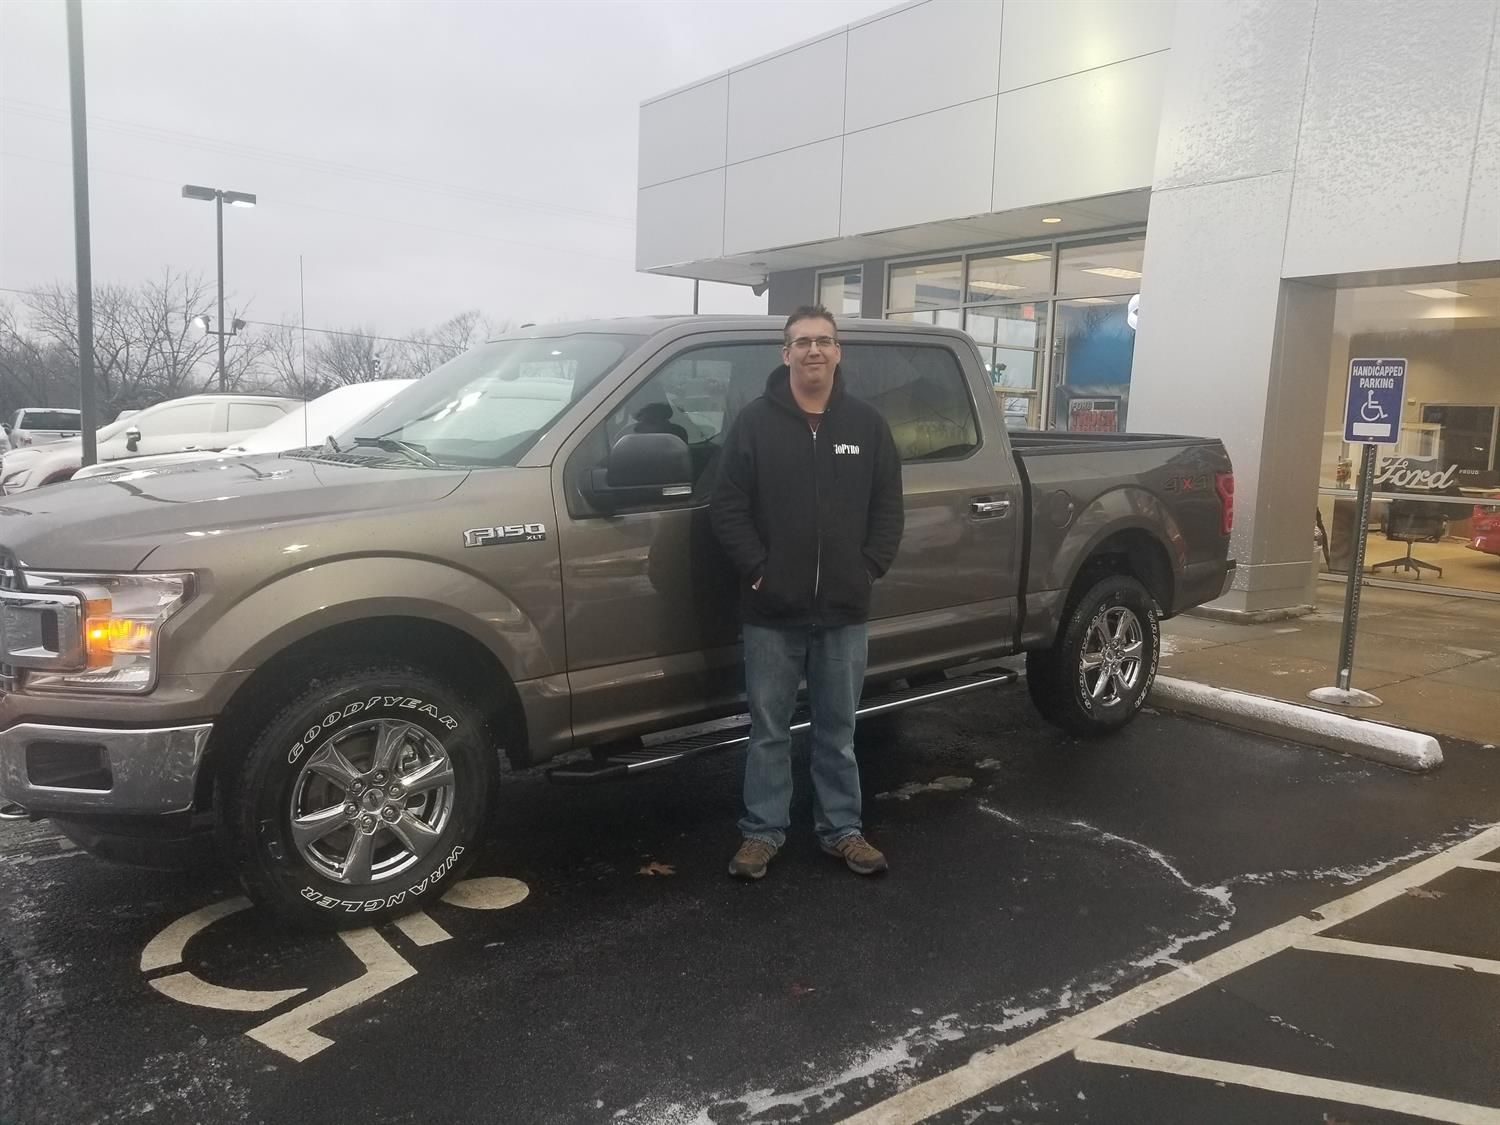 Zane Wishing You Many Miles Of Smiles In Your 2018 Ford F 150 All The Best Auto Plaza Ford De Soto And Tracy Gersbacher Ford F150 Road Trip Trip